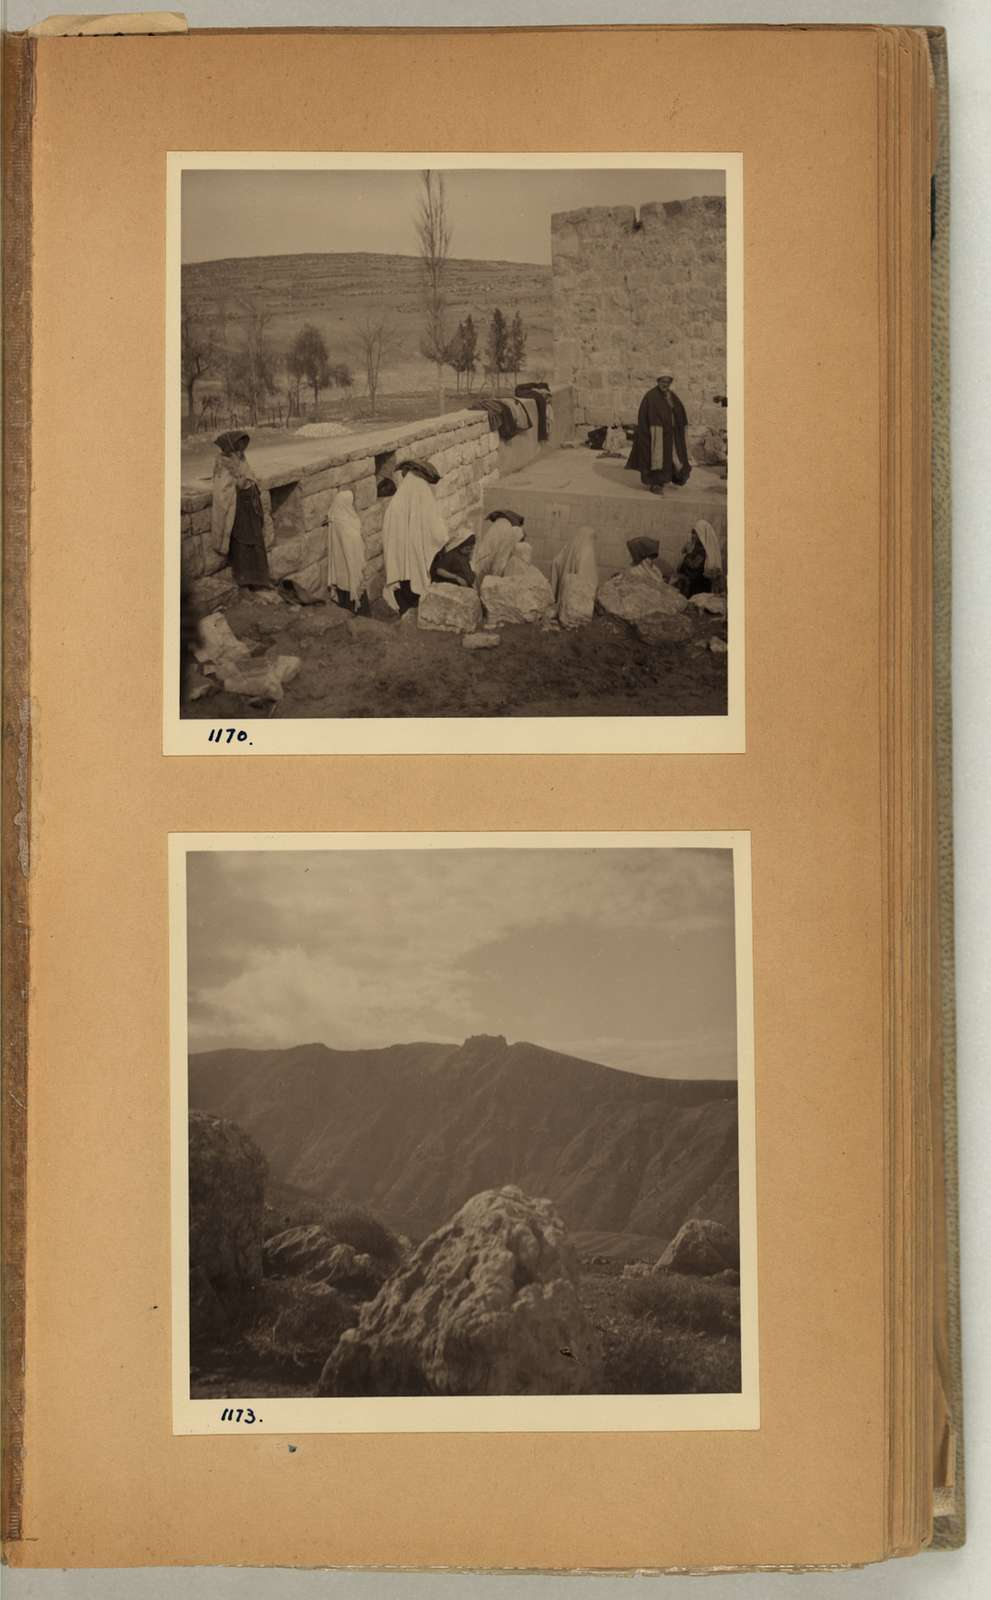 Diary in photos, vol. II, 1936-1937